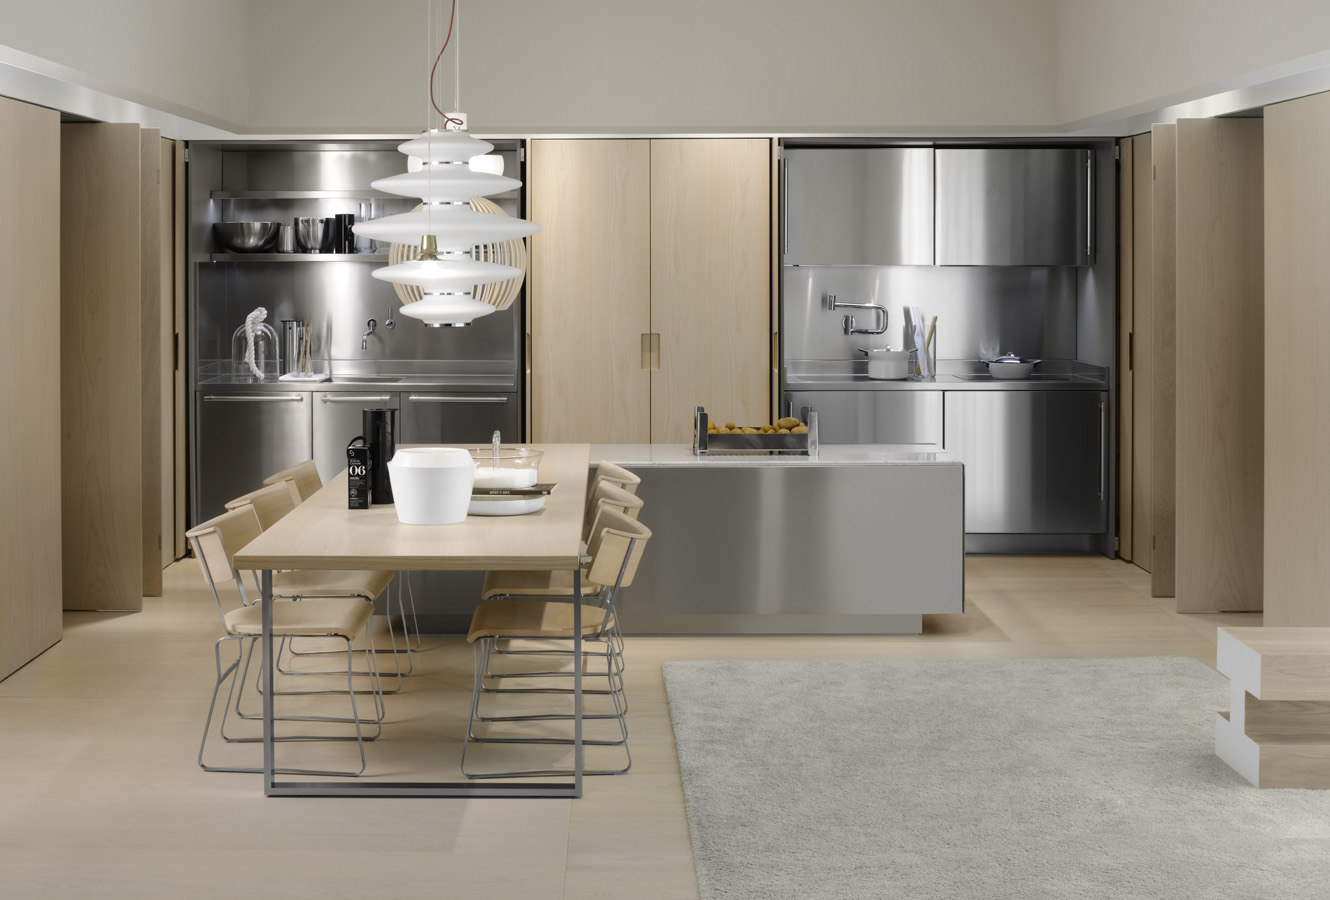 arclinea simple kitchen with aluminium designs simple kitchen with aluminium furniture design for small space by      rh   roohome com